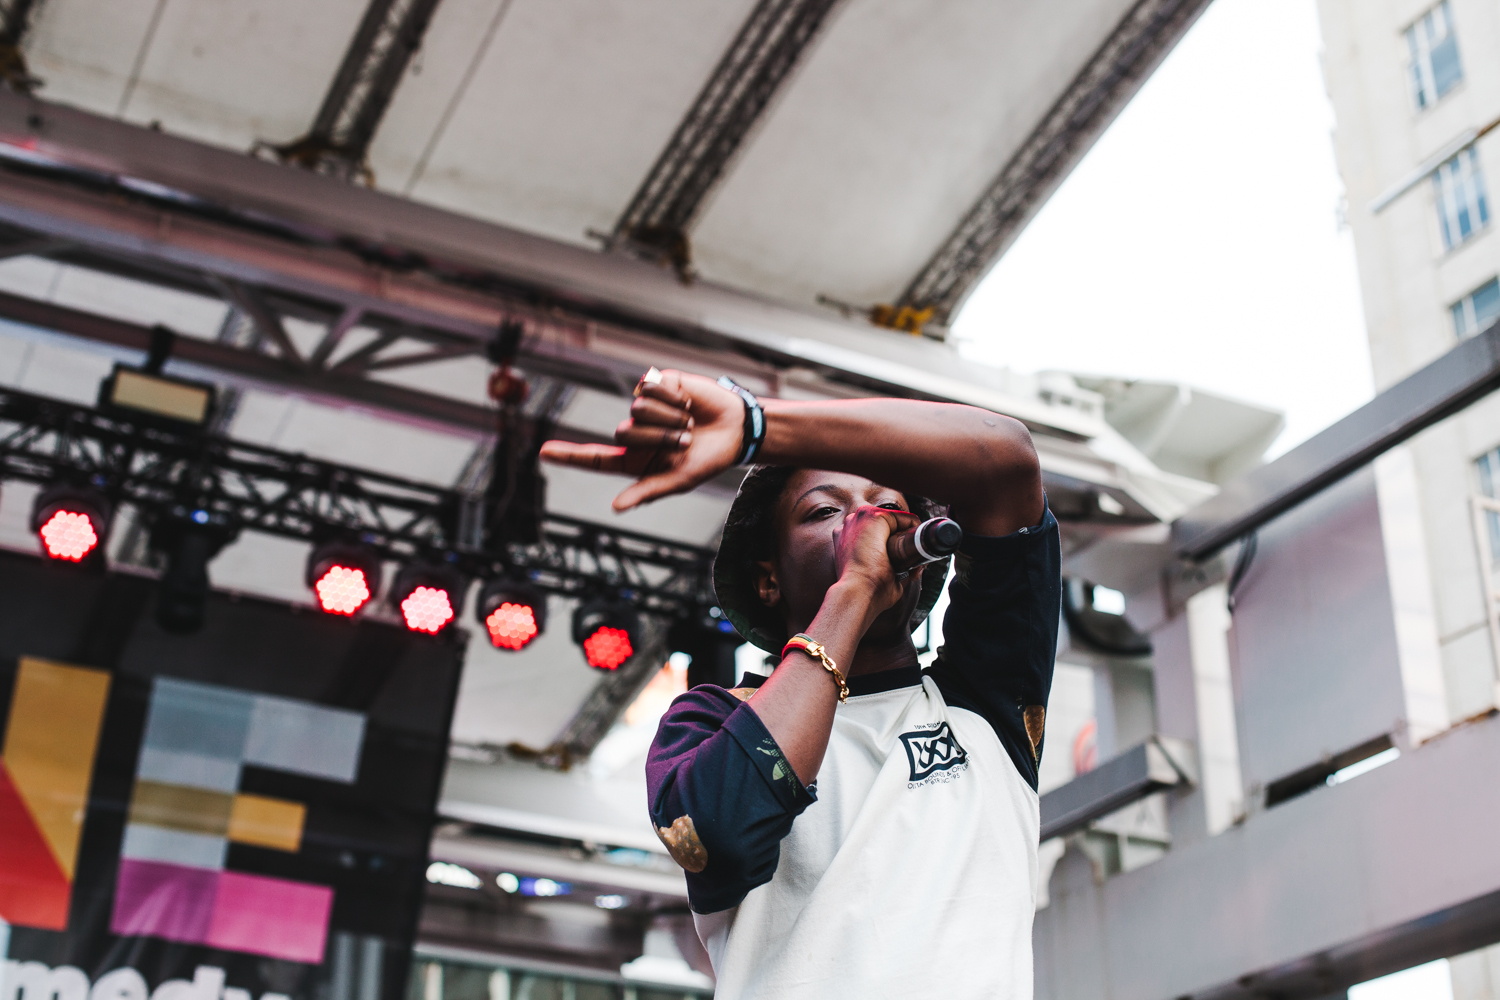 nxne_day5_joey_badass-6515.jpg